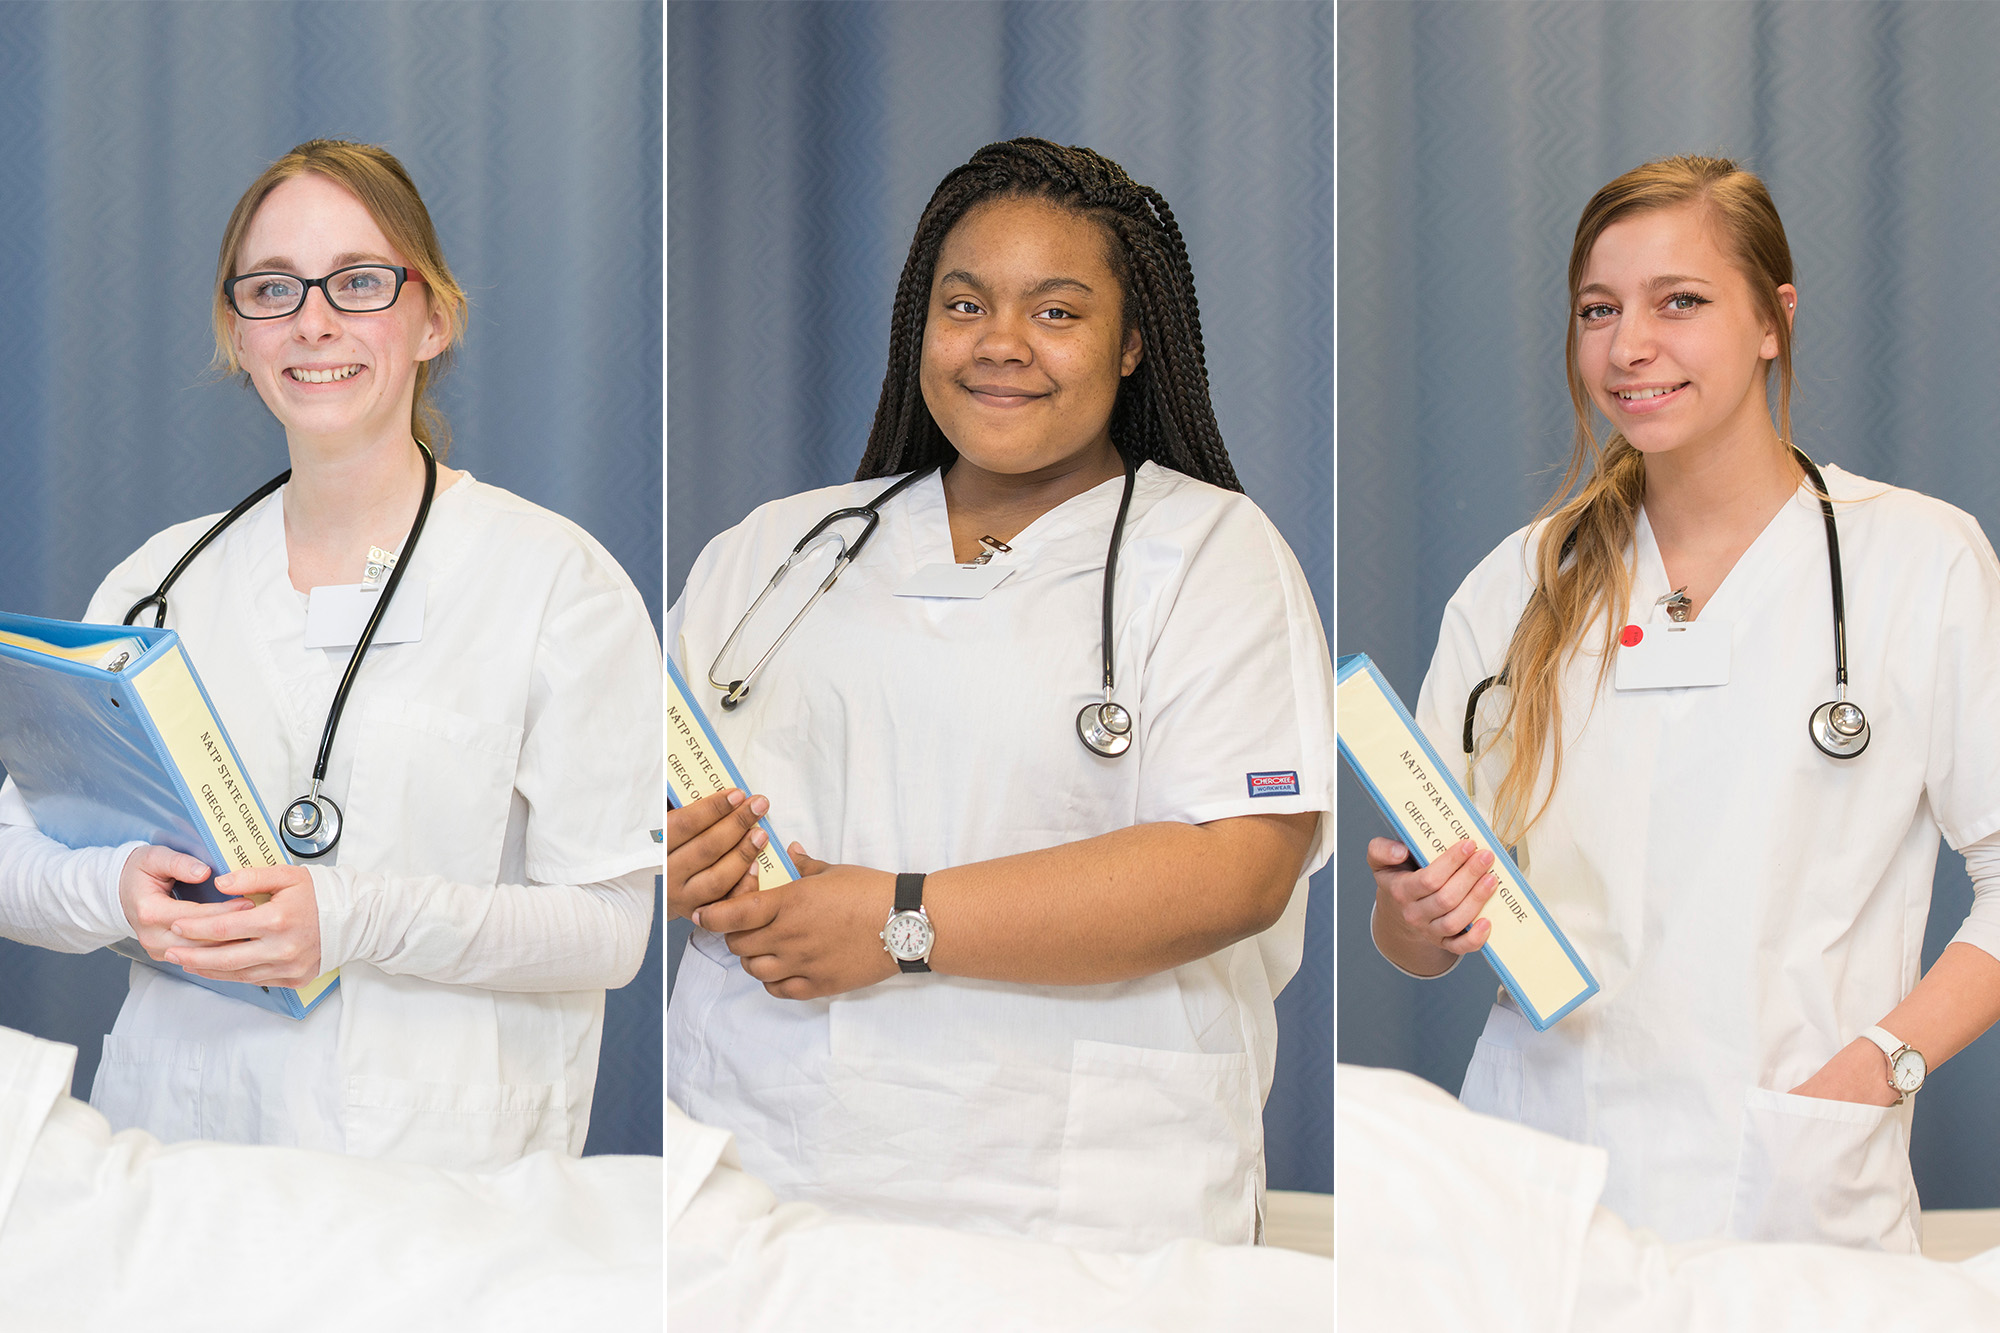 CNA students pose in the CNA Lab on campus in Battle Creek.